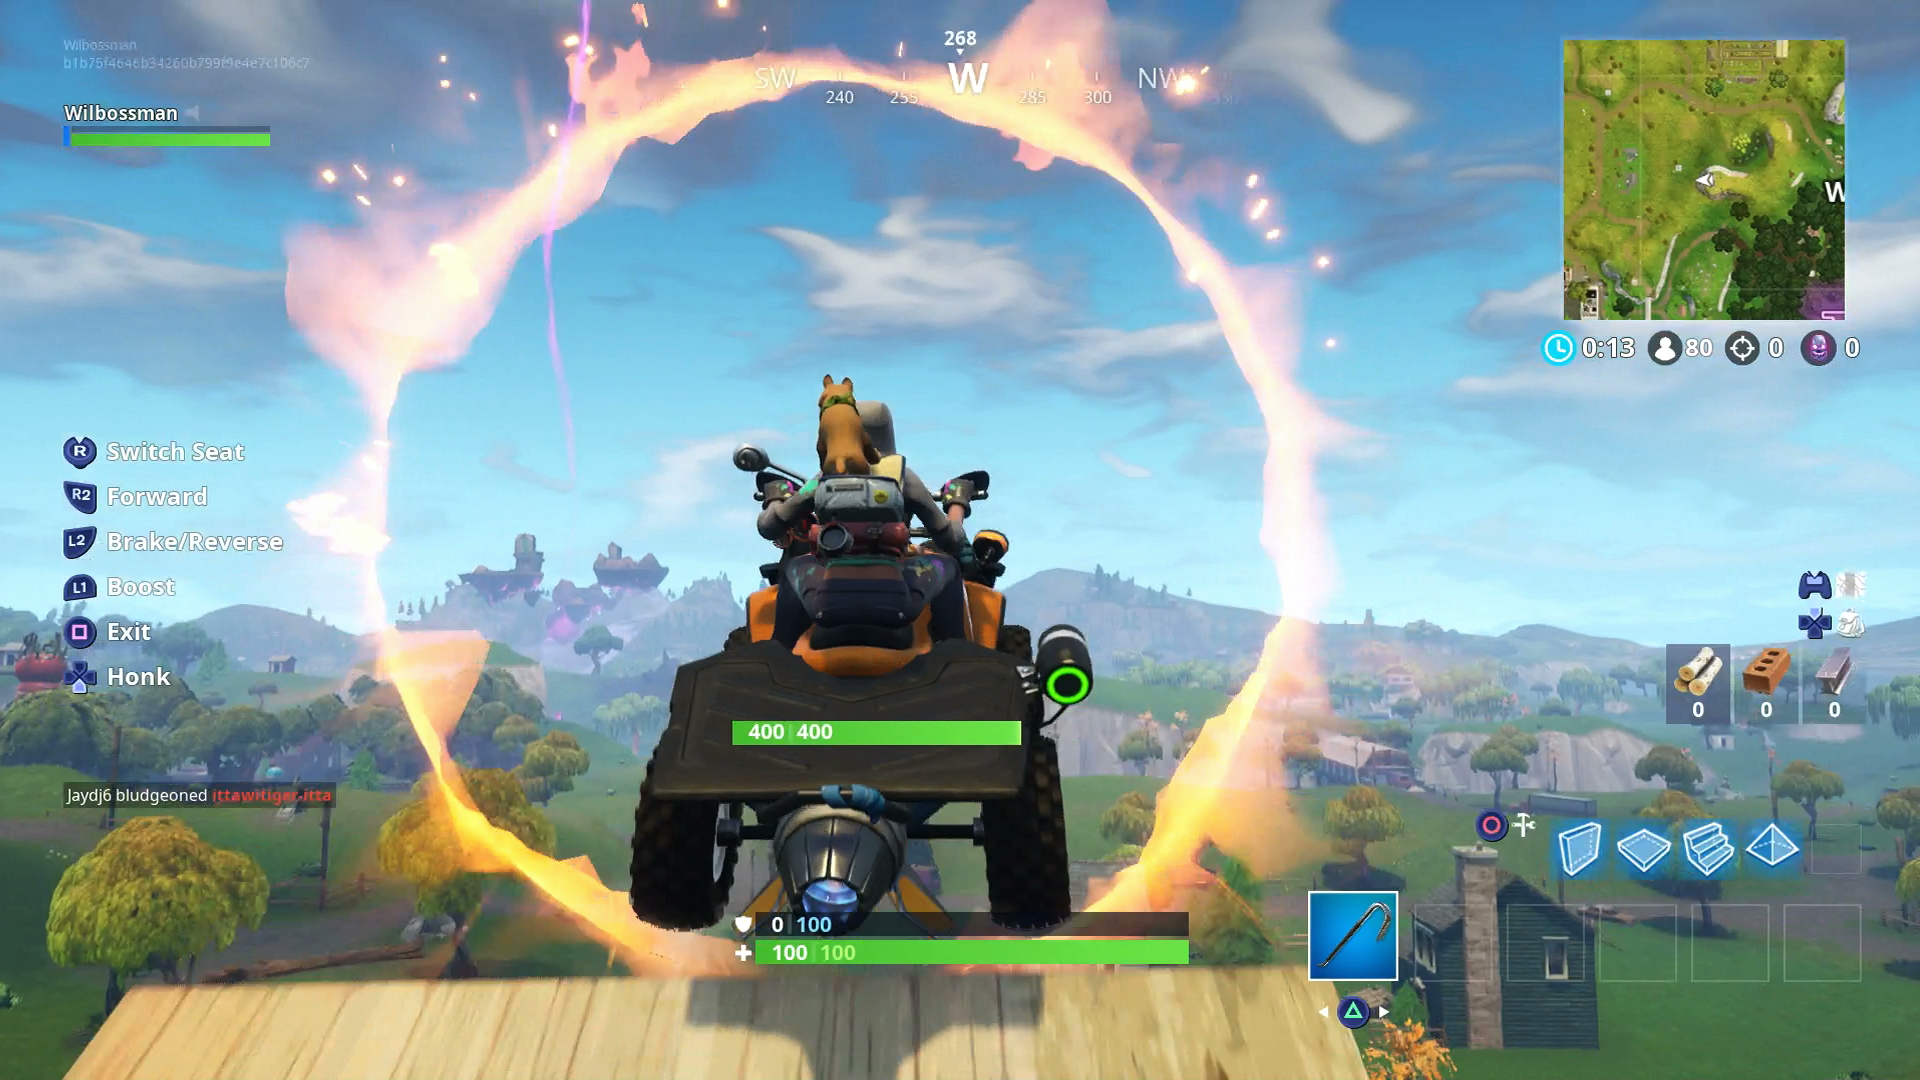 Fortnite Flaming Hoops All The Locations To Jump Through Flaming